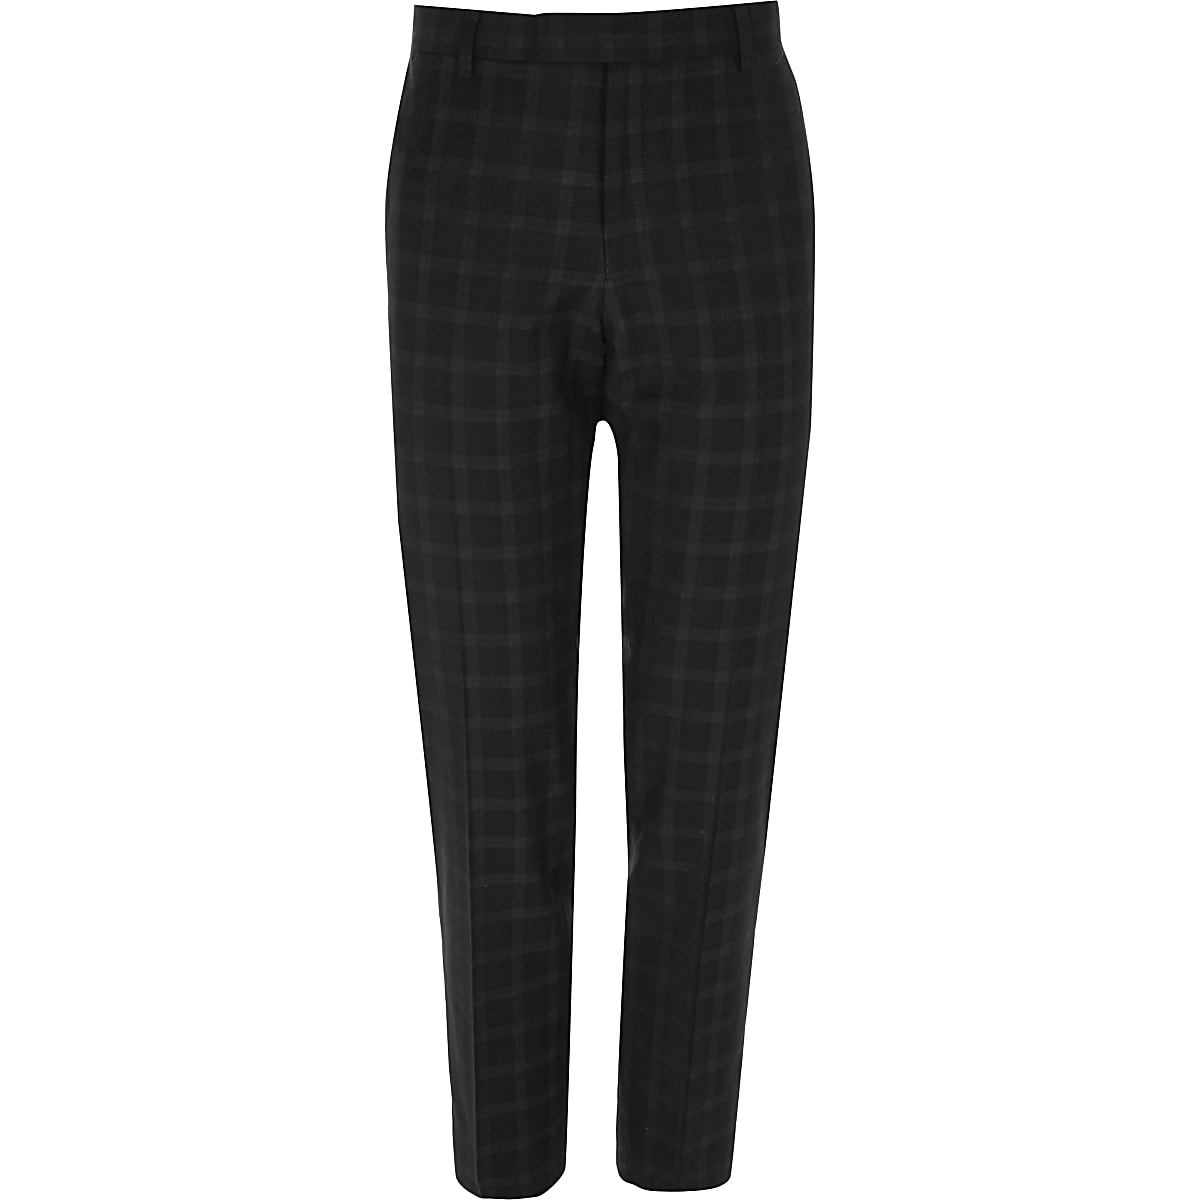 bbdb7746a448 Black and burgundy check skinny suit trousers - Suit Trousers ...